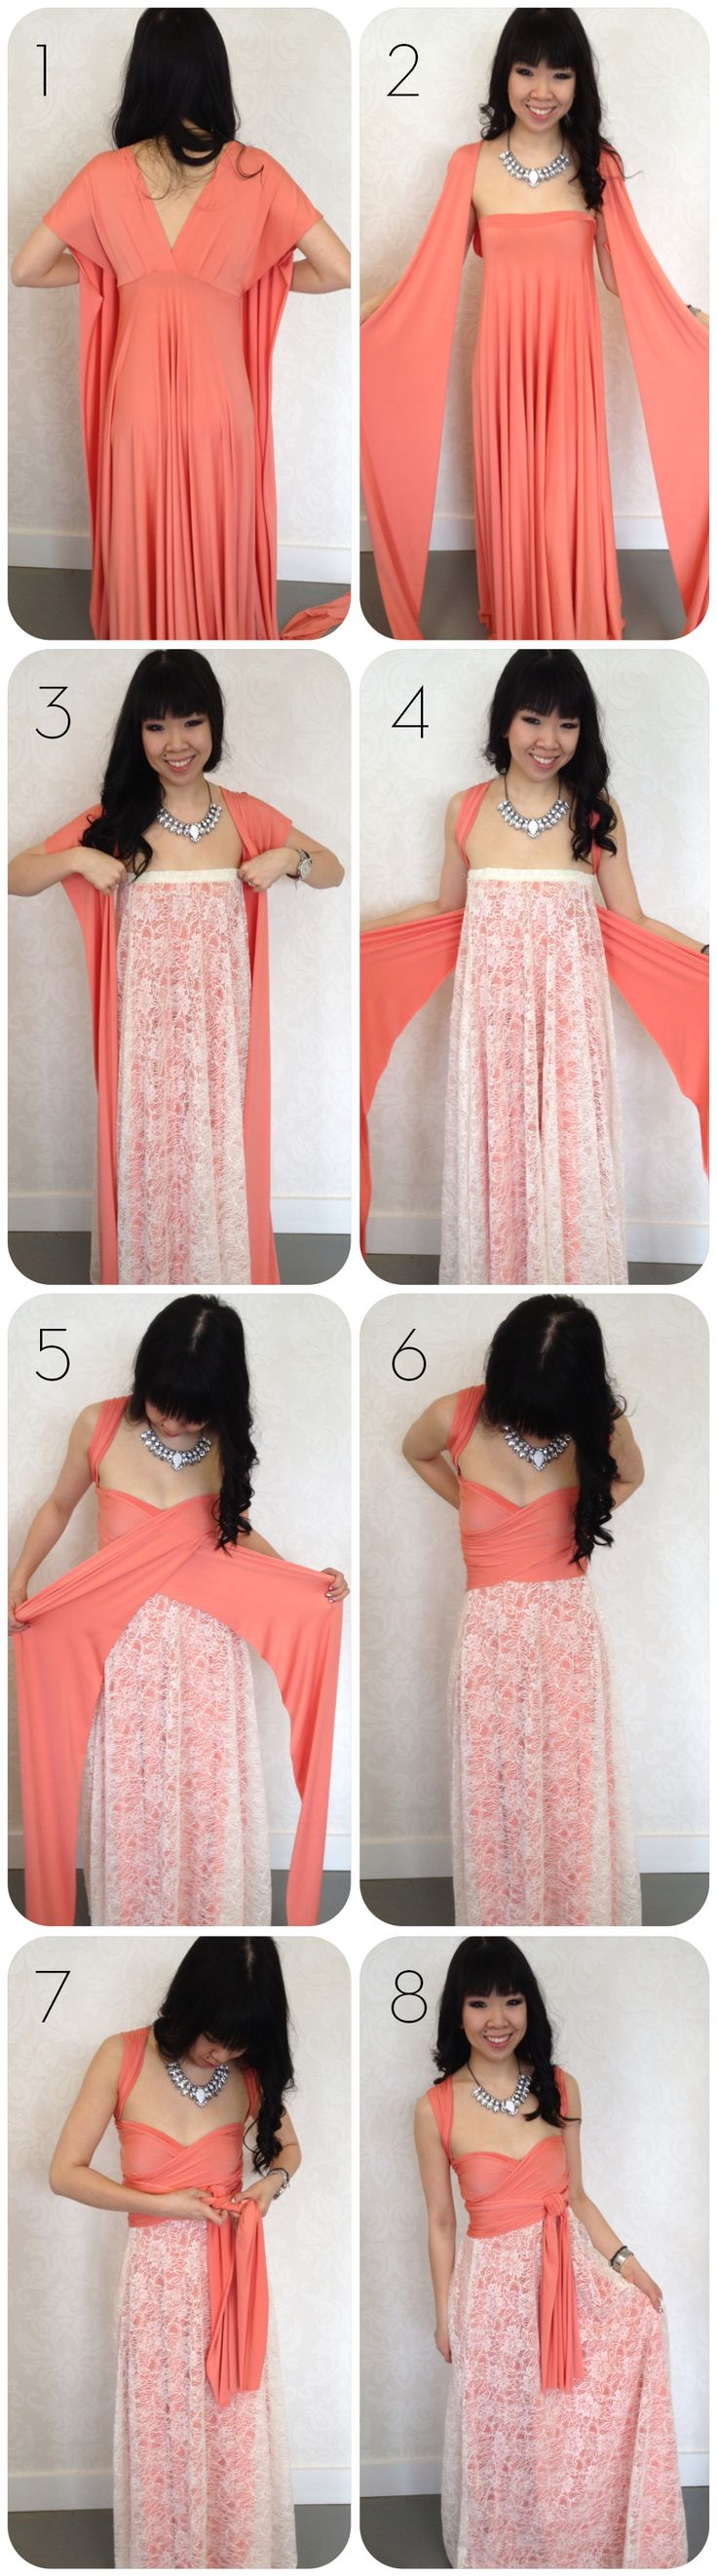 how to add lace to a convertible dress